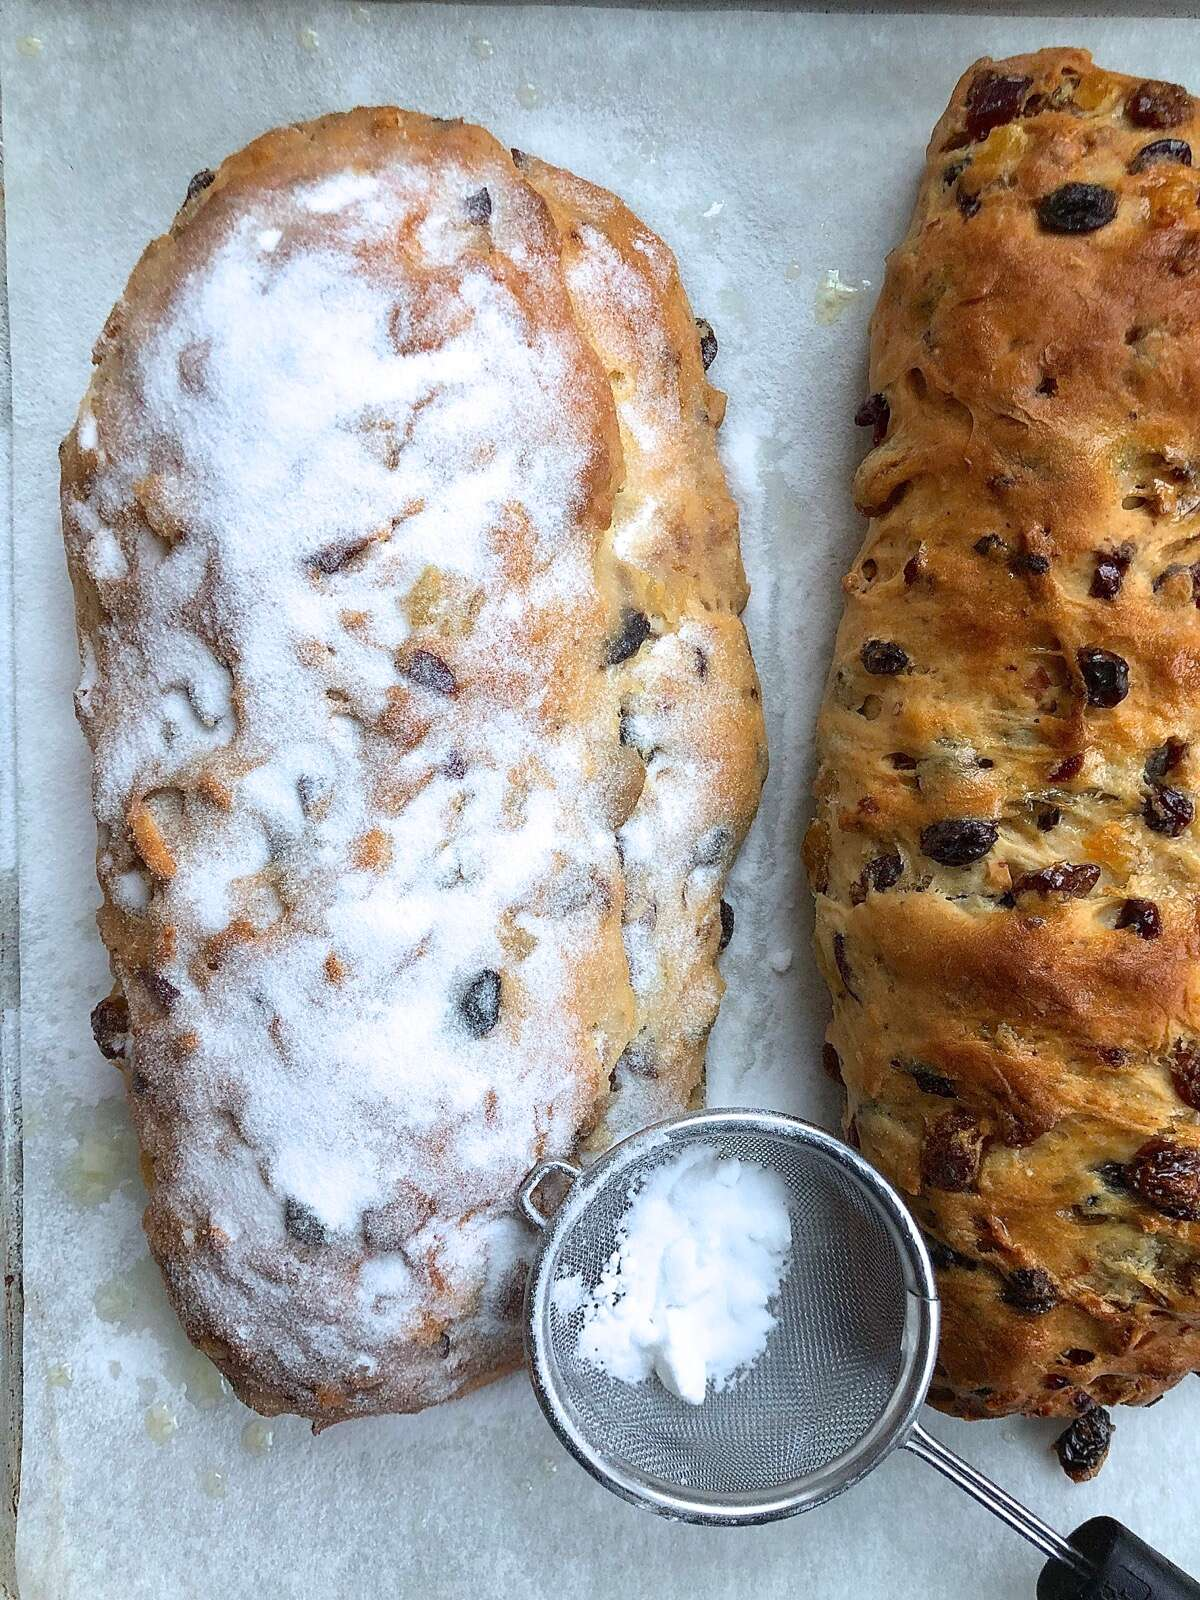 Finished stollen brushed with butter and showered with superfine sugar.